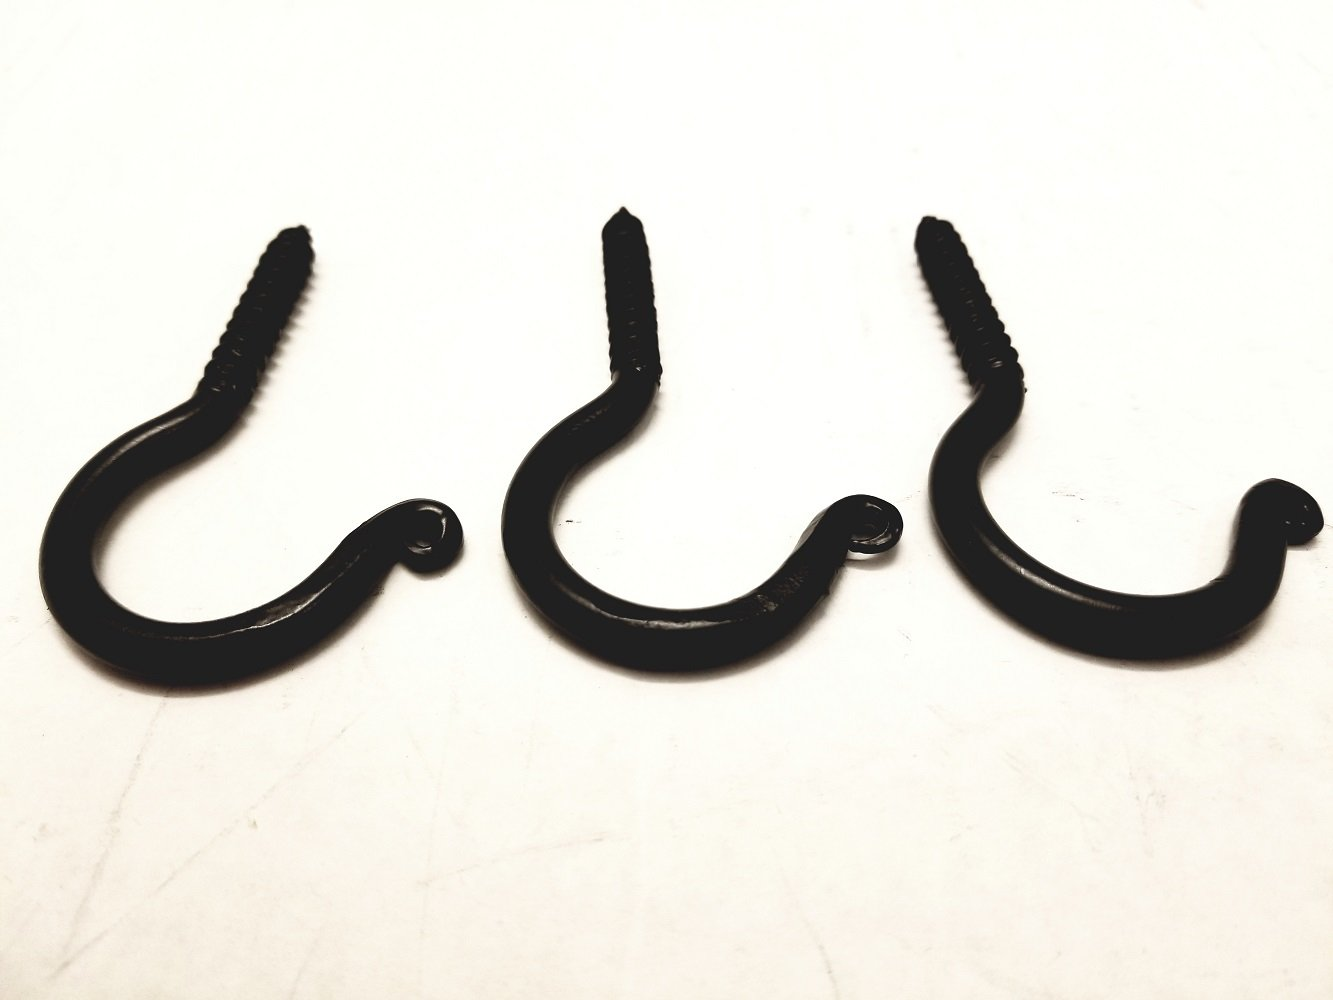 3 Pack Wrought Iron Ceiling Hook Screw Country Primitive Décor - Each Hook is 3'' Long